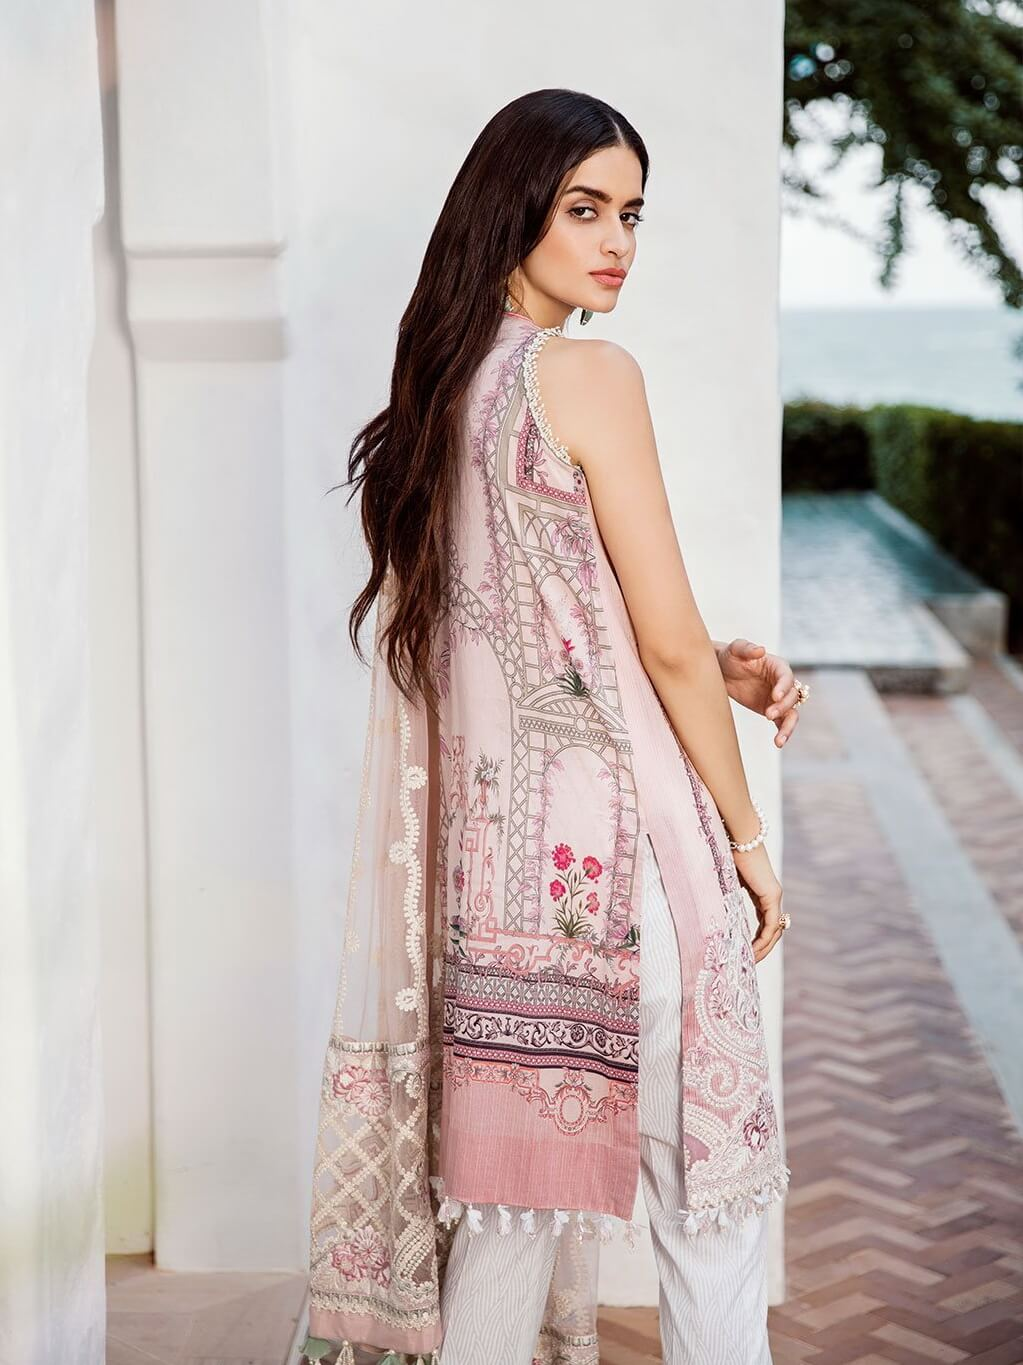 BAROQUE Luxury Lawn Embroidered 3Pc Suit Summer 2019 BQ 02 Pink lcing - FaisalFabrics.pk